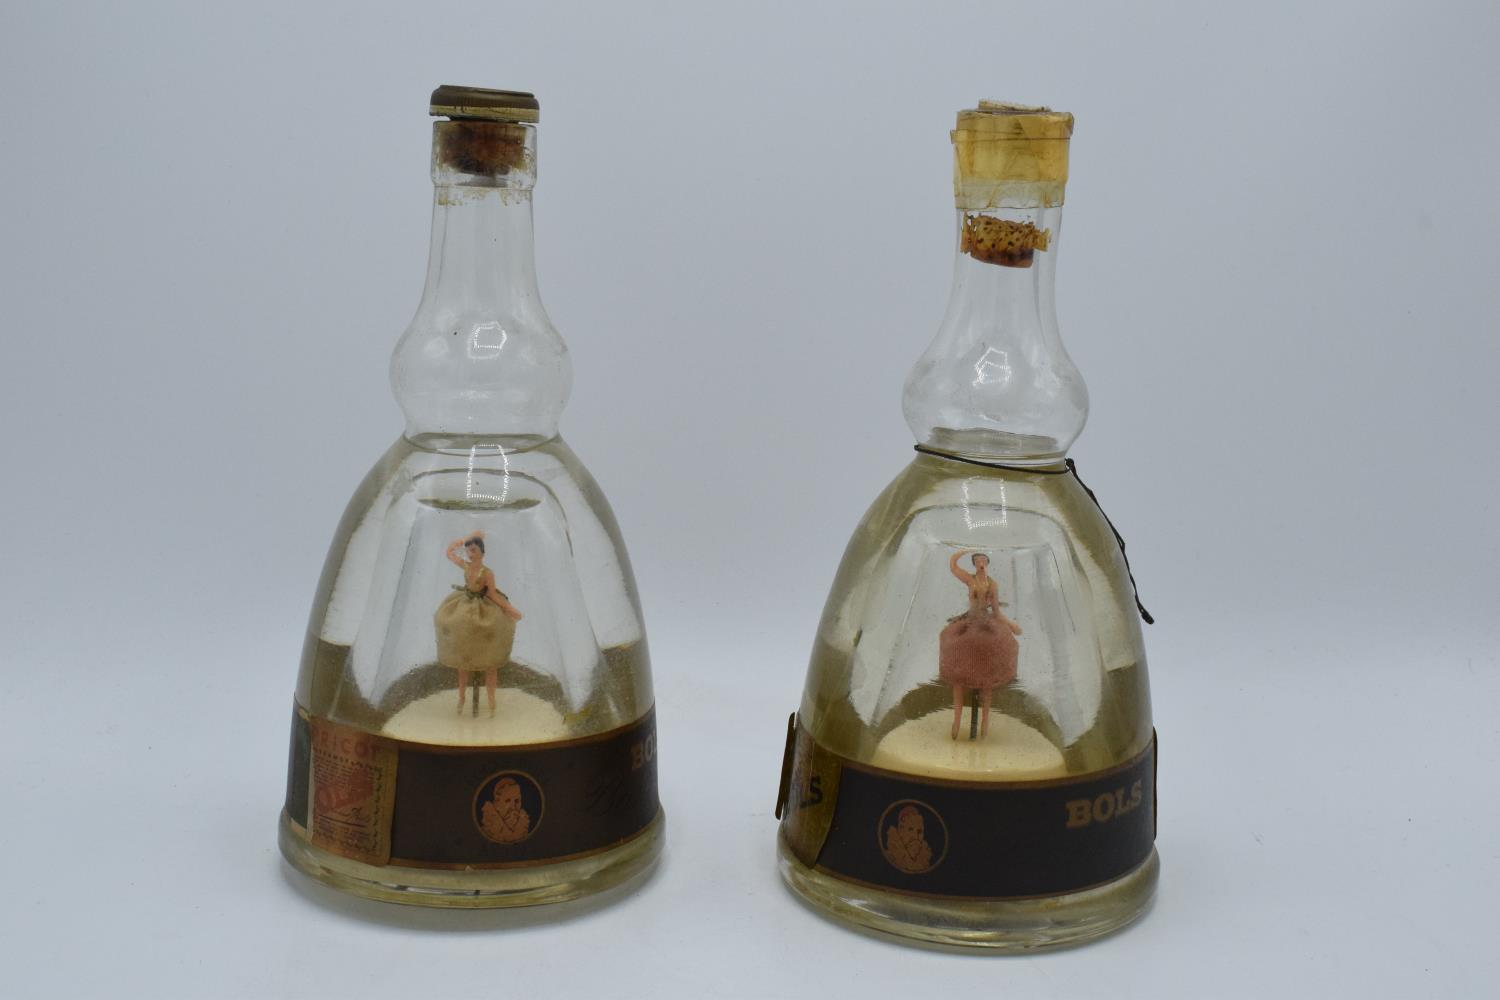 A pair of Bols Ballerinas in a bottle (2). Both appear to be in working order, though untested. No